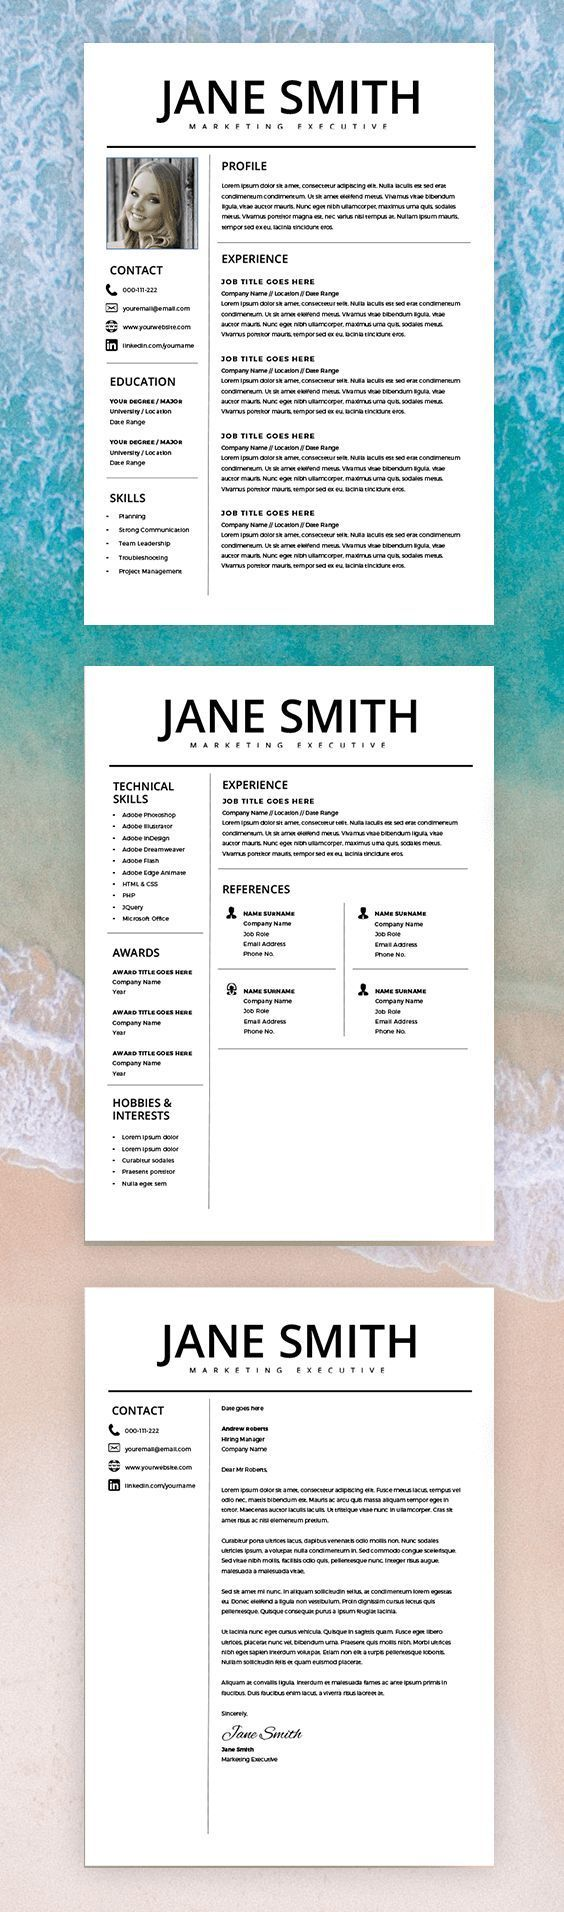 Professional Resume Template - Word & Page Compatible - Best CV ...